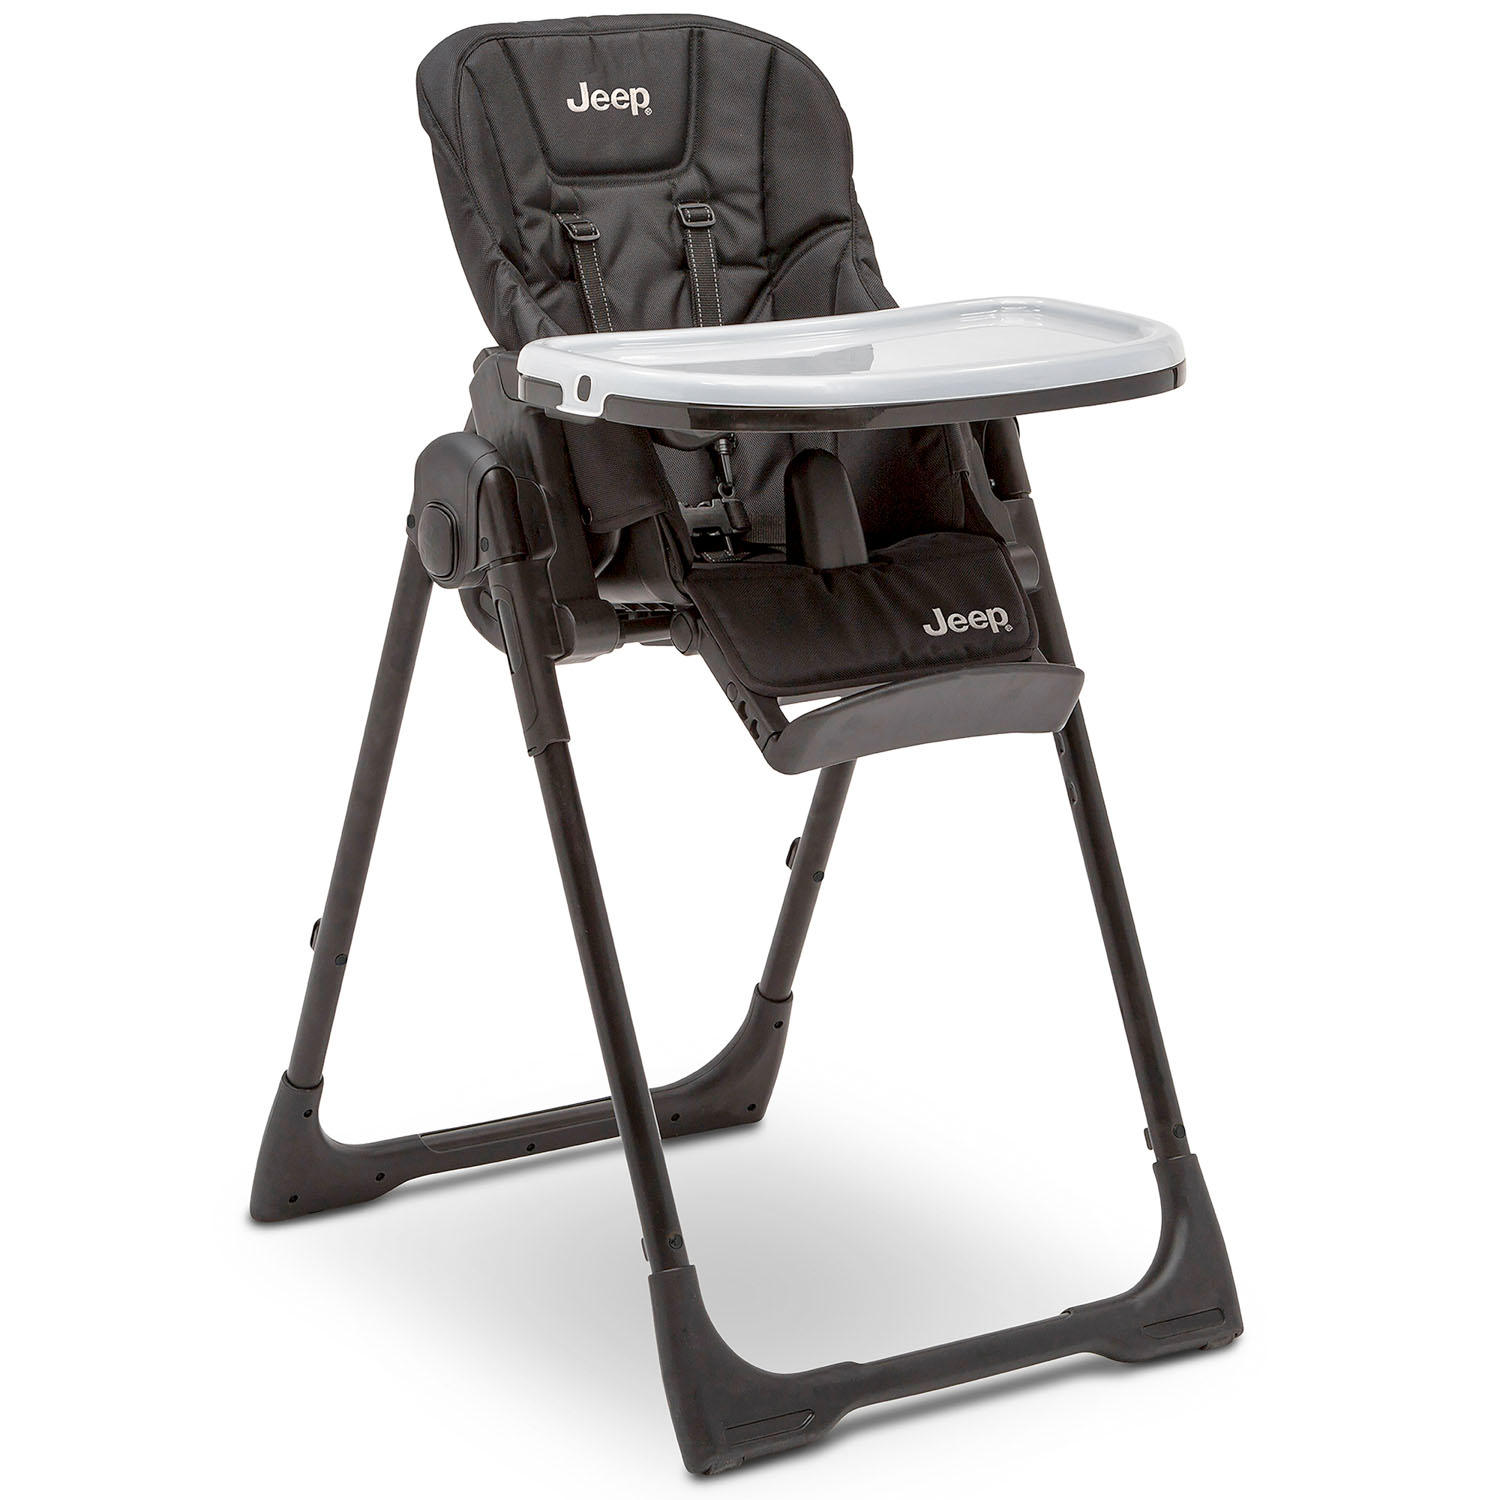 Jeep Classic Convertible High Chair for Babies by Delta Children